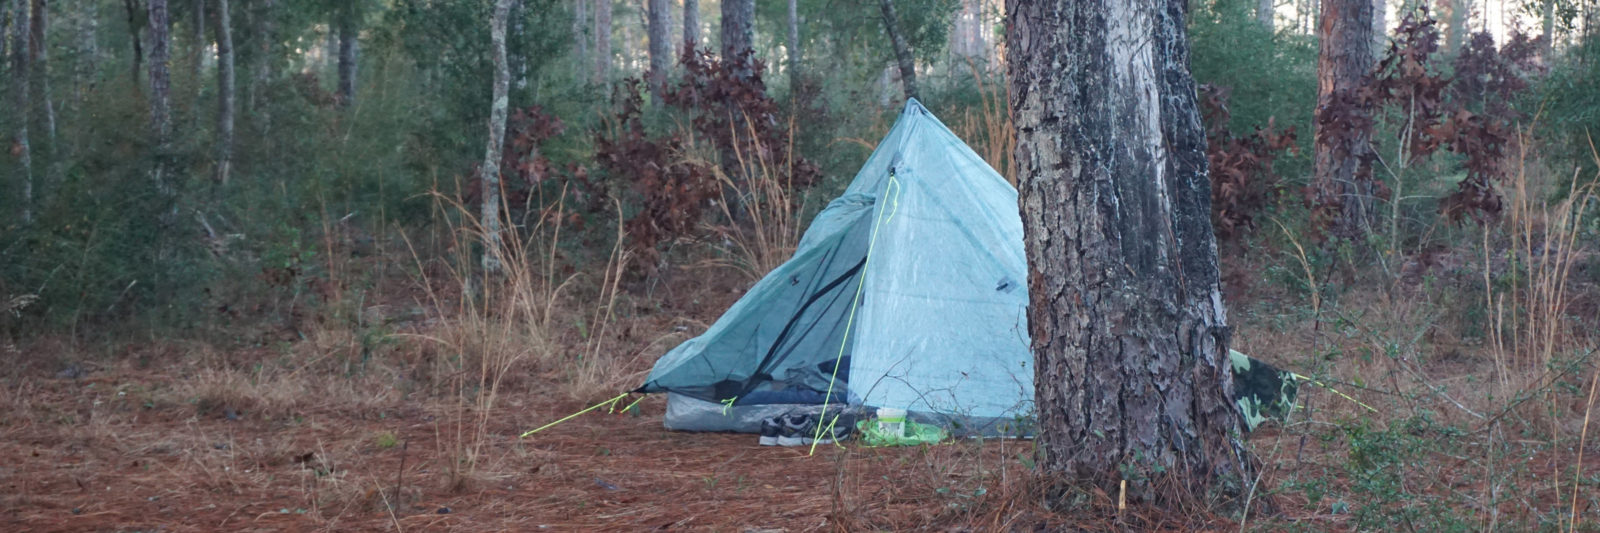 Camping at JR Walton Pond Eglin